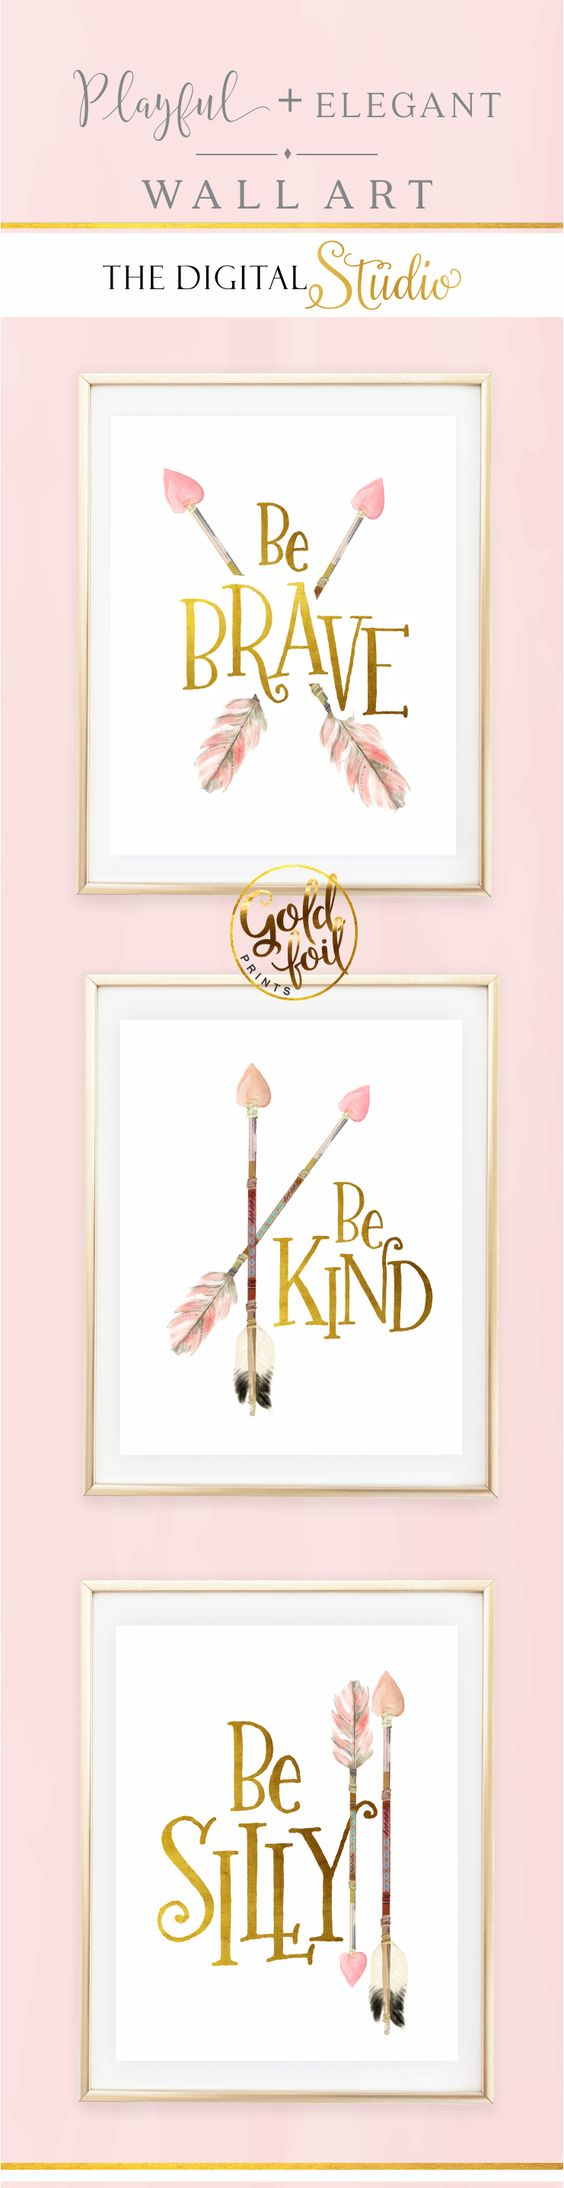 Baby girl nursery wall decor set of 3 pink and gold wall art baby girl nursery wall decor set of 3 pink and gold wall art little girl woodland nursery decor canvas art pinterest woodland nursery decor amipublicfo Image collections